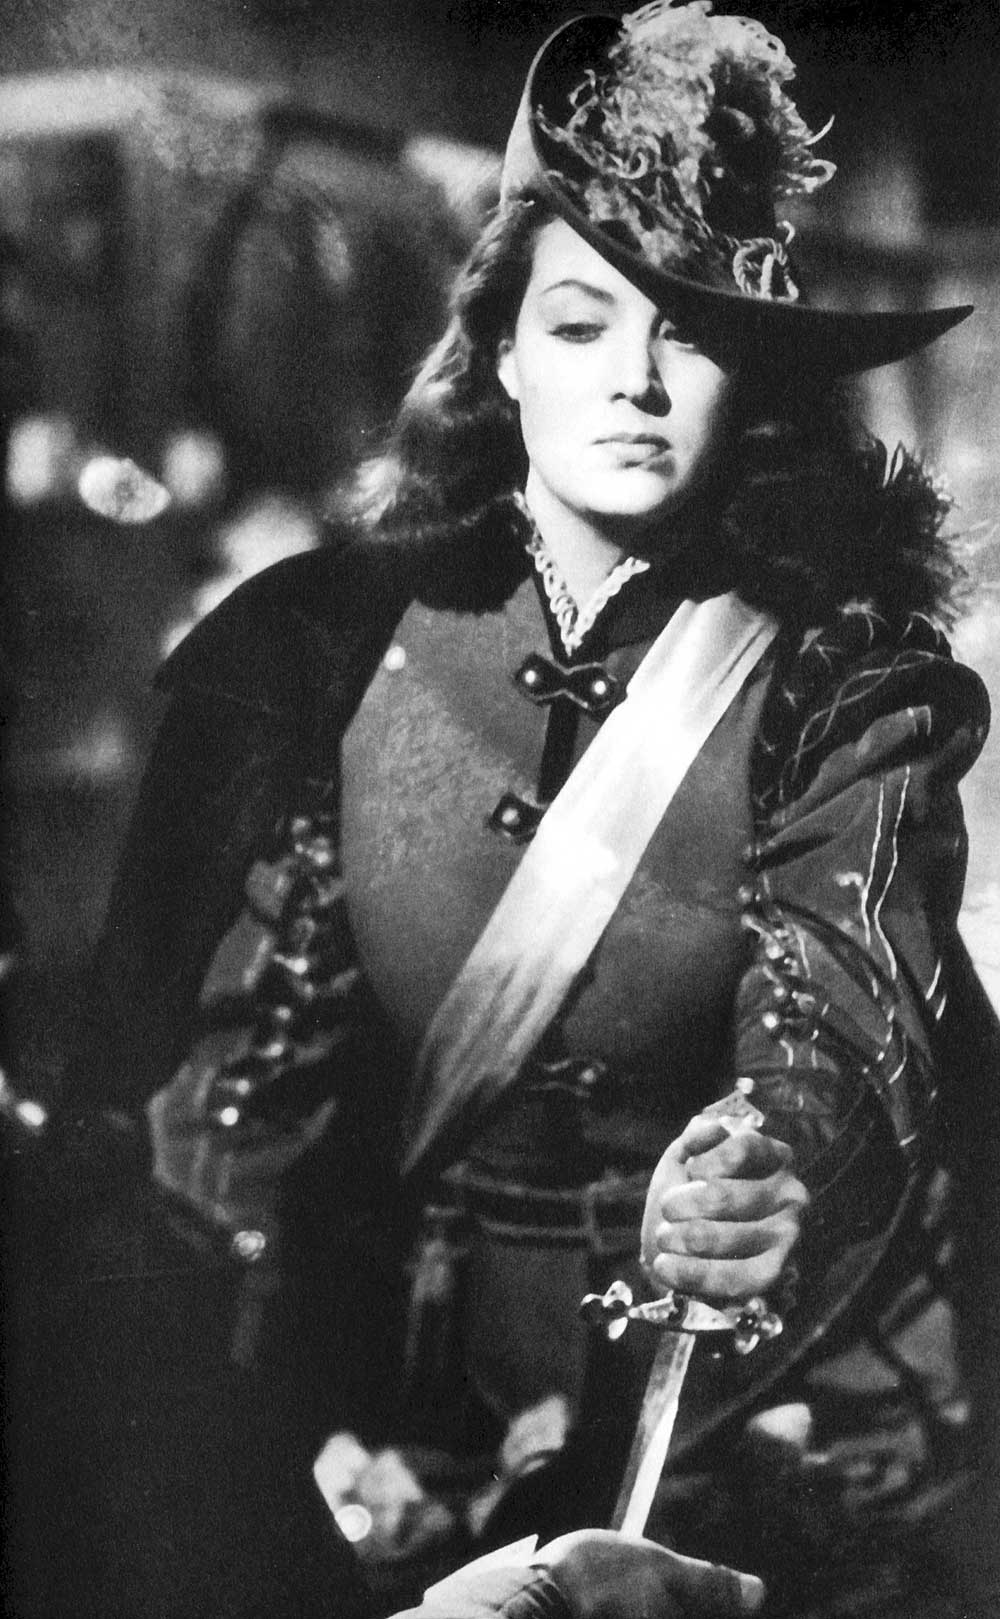 Maria Flix as Catalina de Erauso